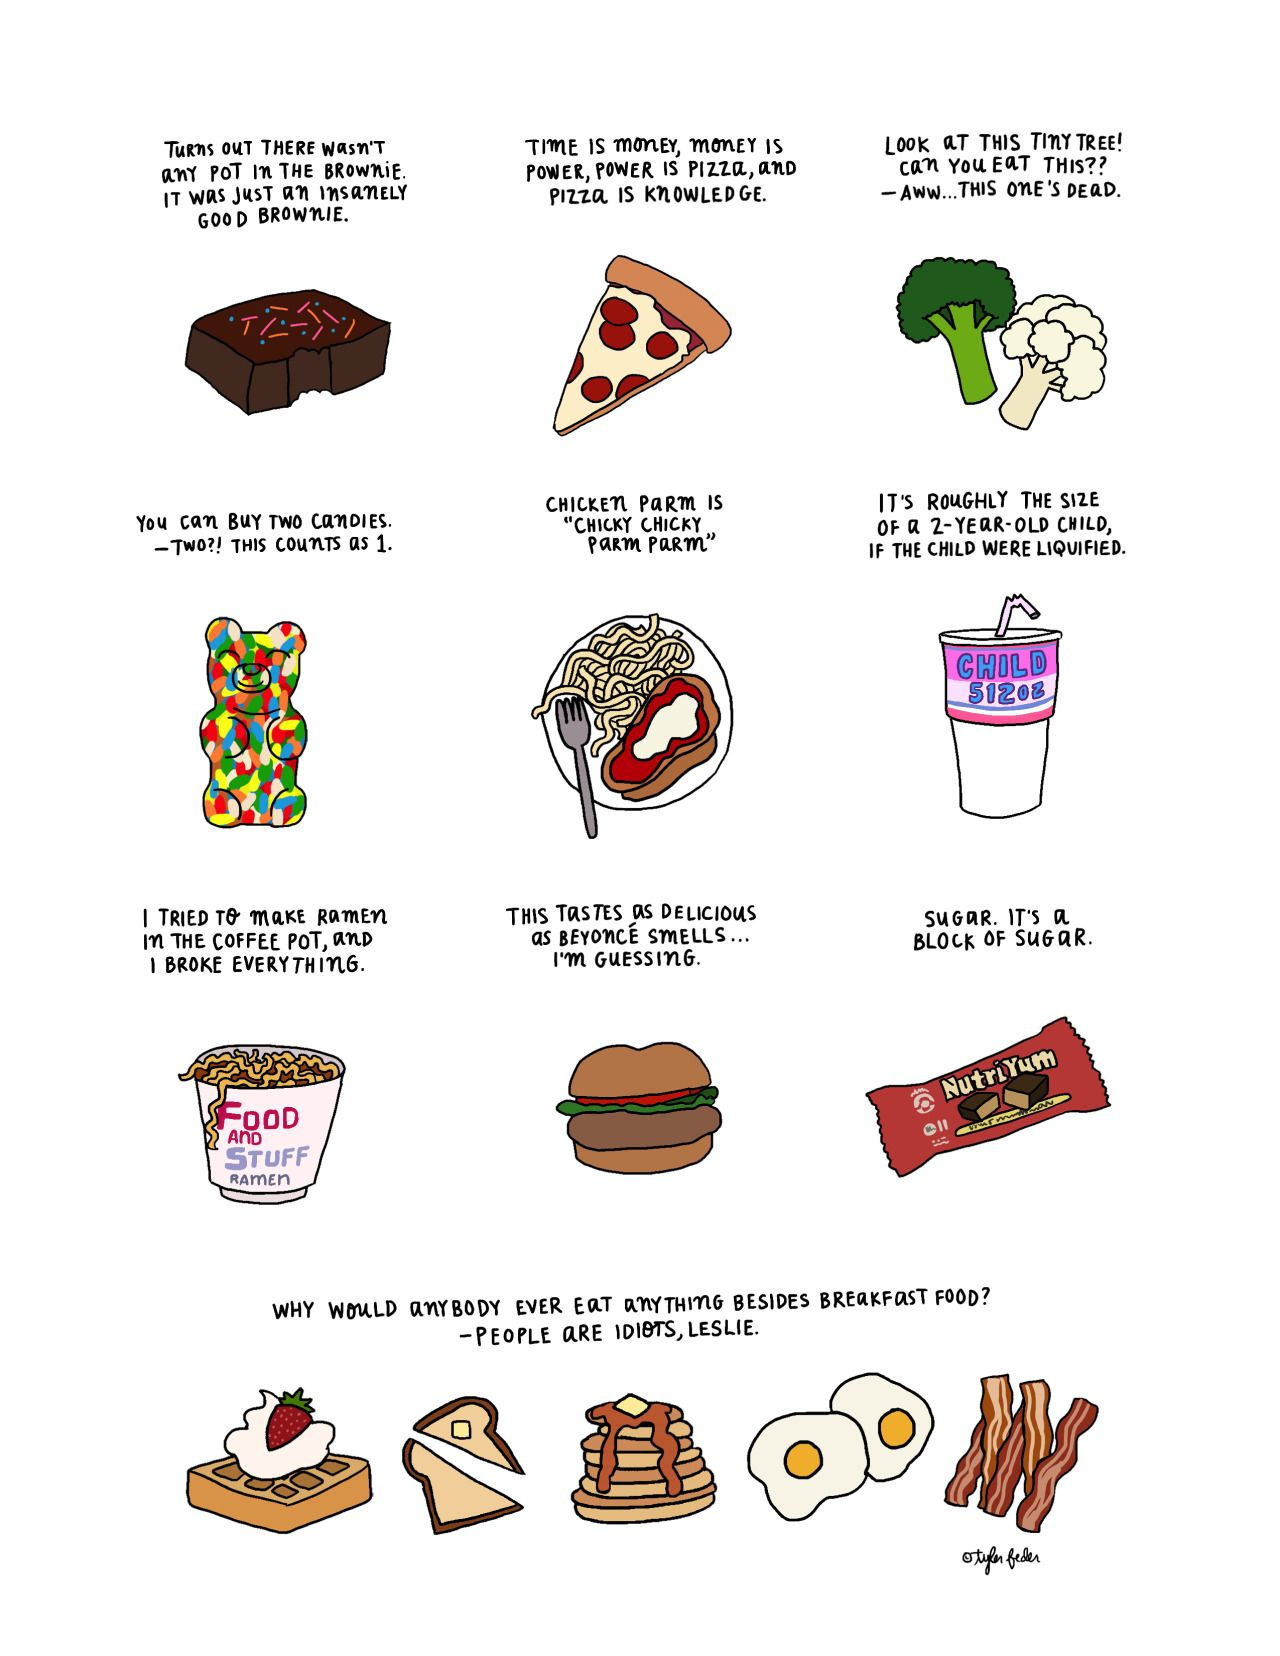 Some Foods of Parks and Recreation* by Tyler Feder